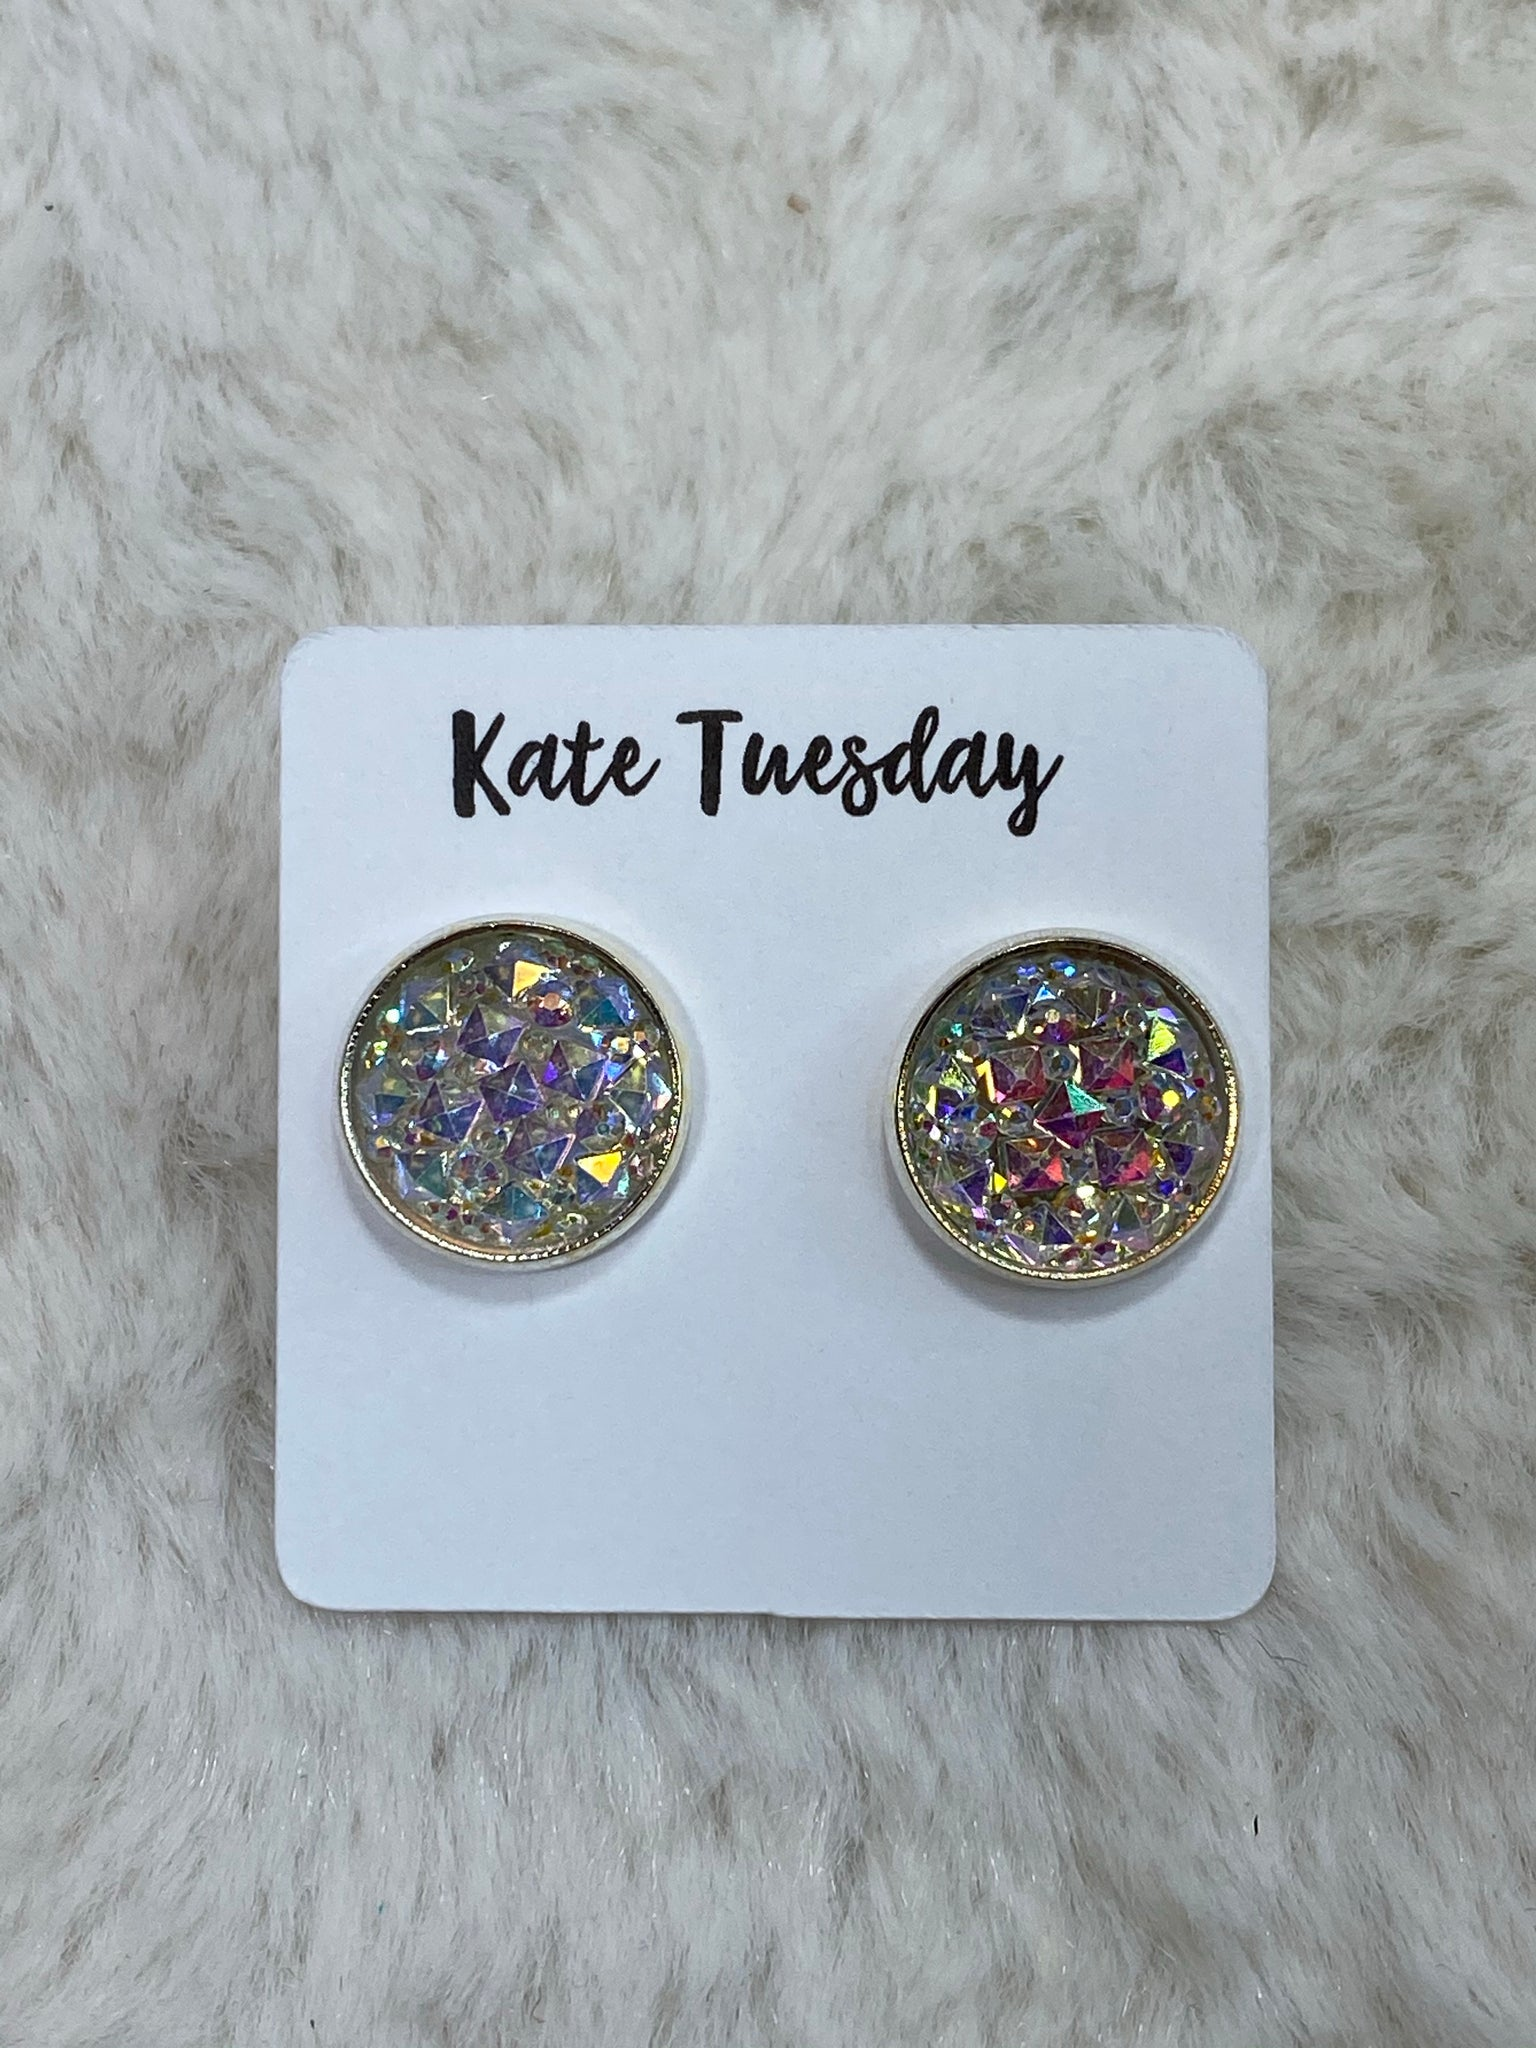 12mm Clear Sparkle Earrings in Silver Setting - True Bliss Boutique